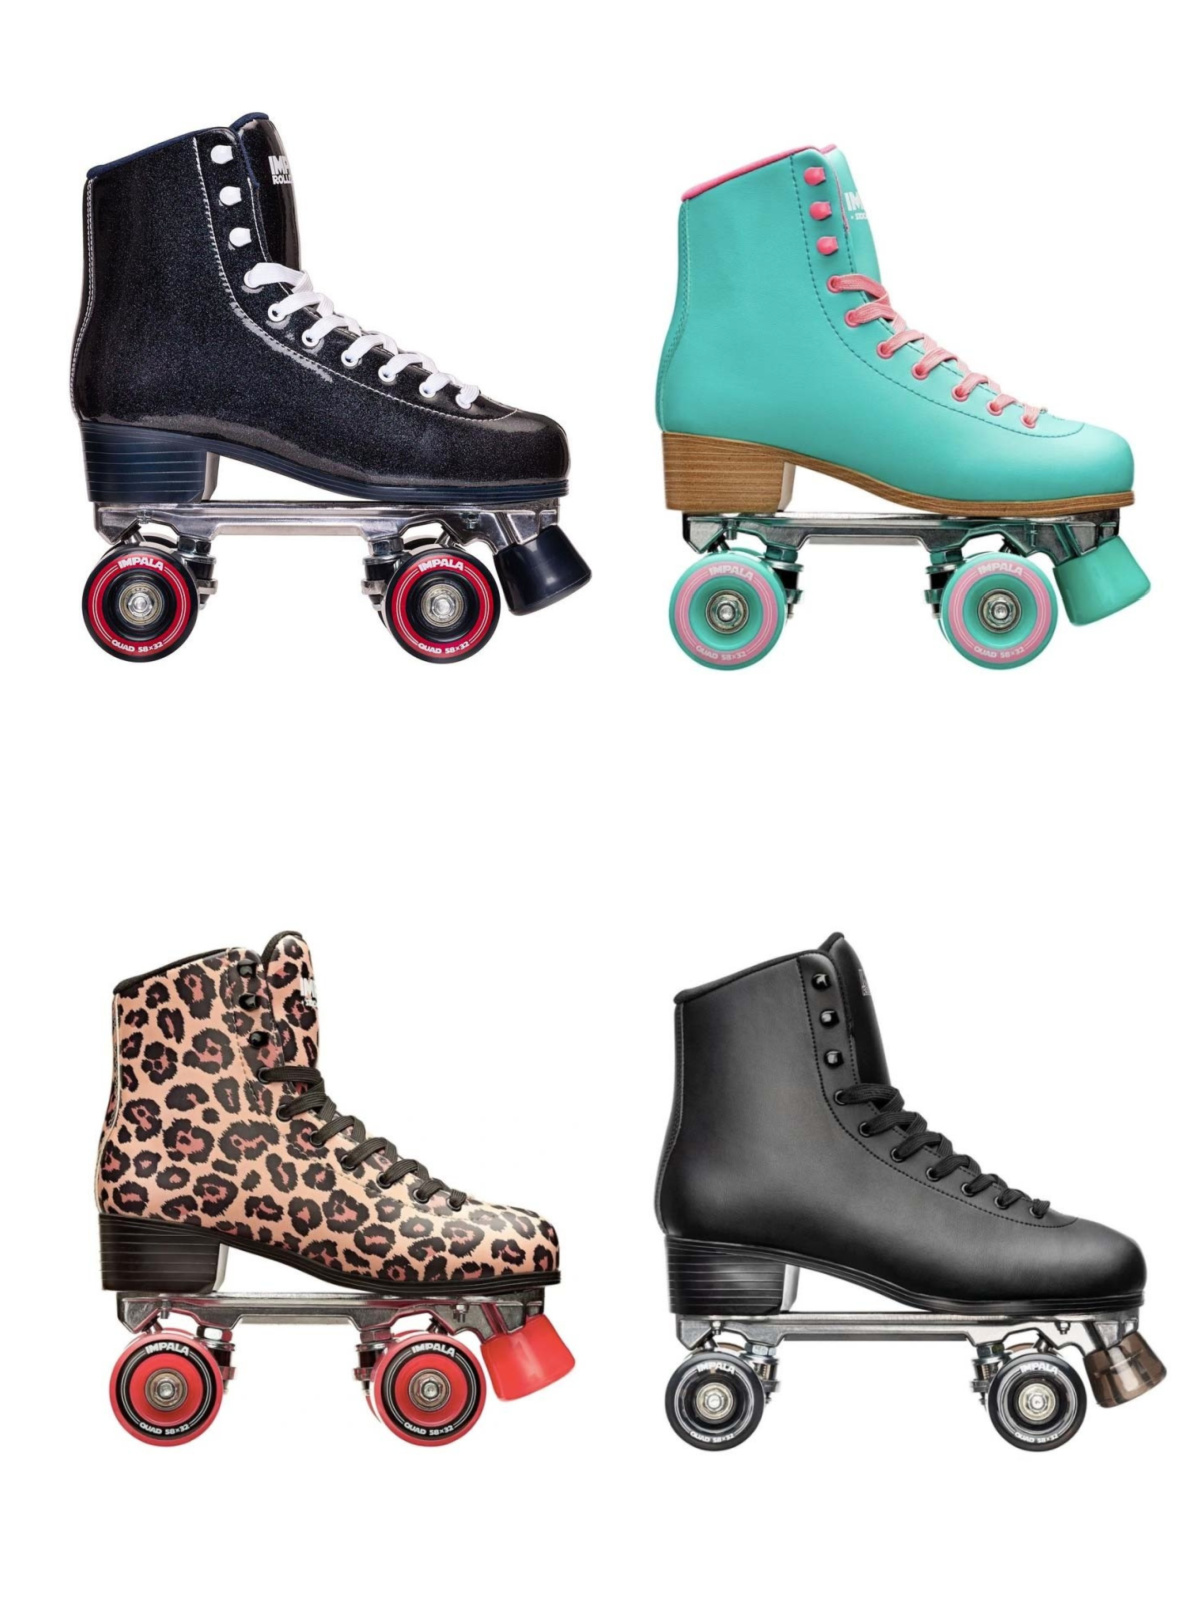 10 best gifts for teens : Impala roller skates | Small Business Holiday Gifts 2020